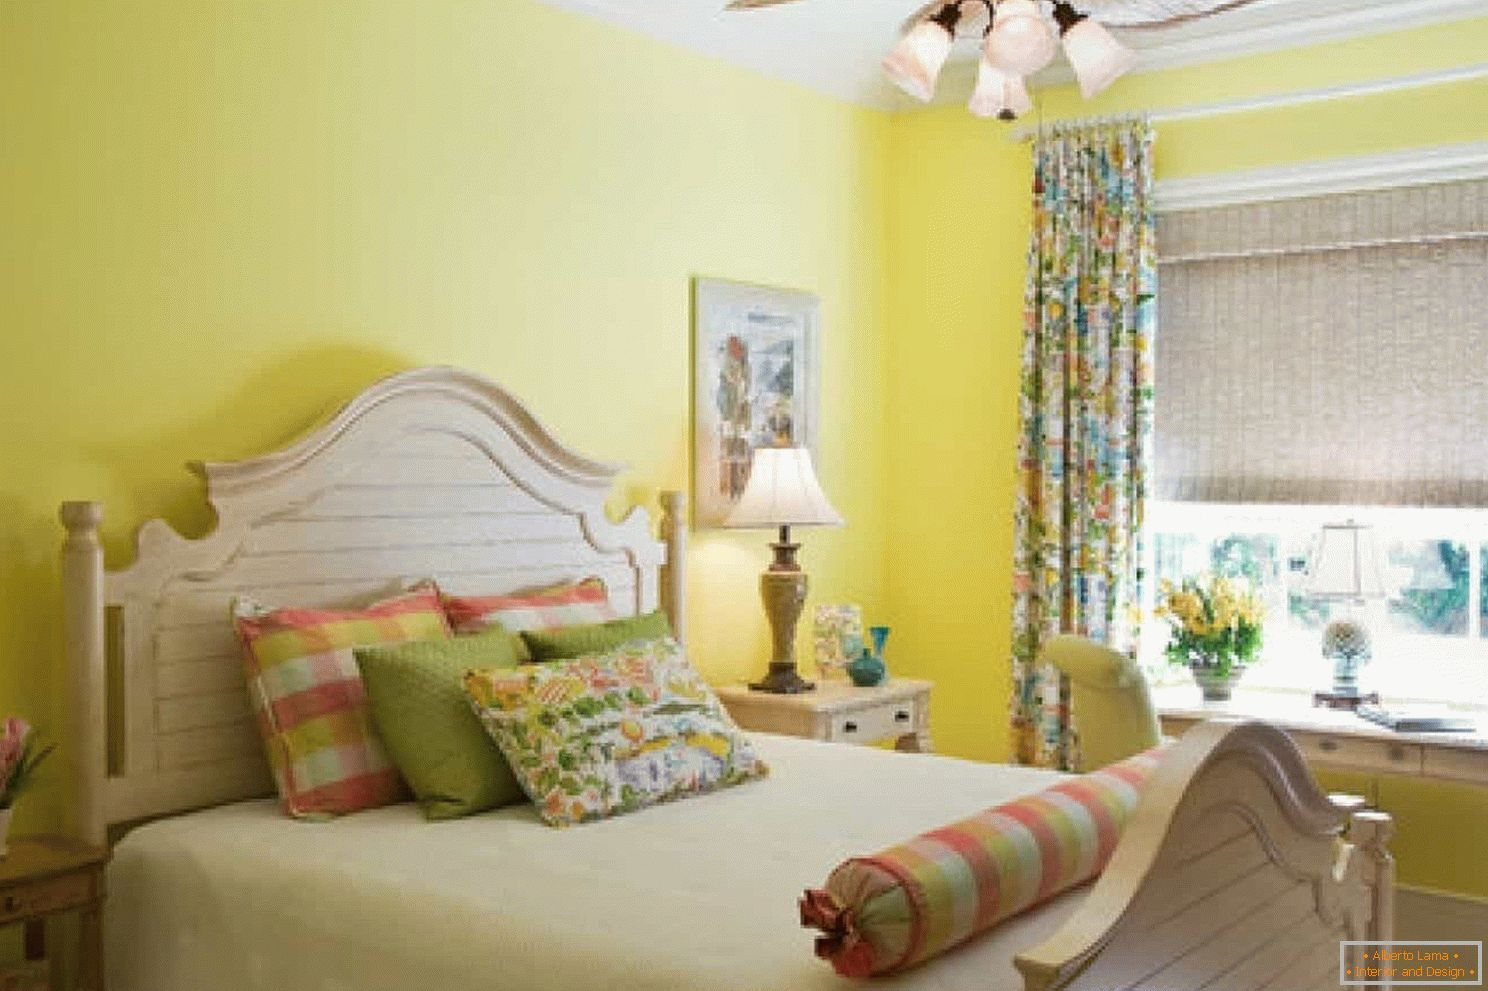 Yellow walls in the bedroom